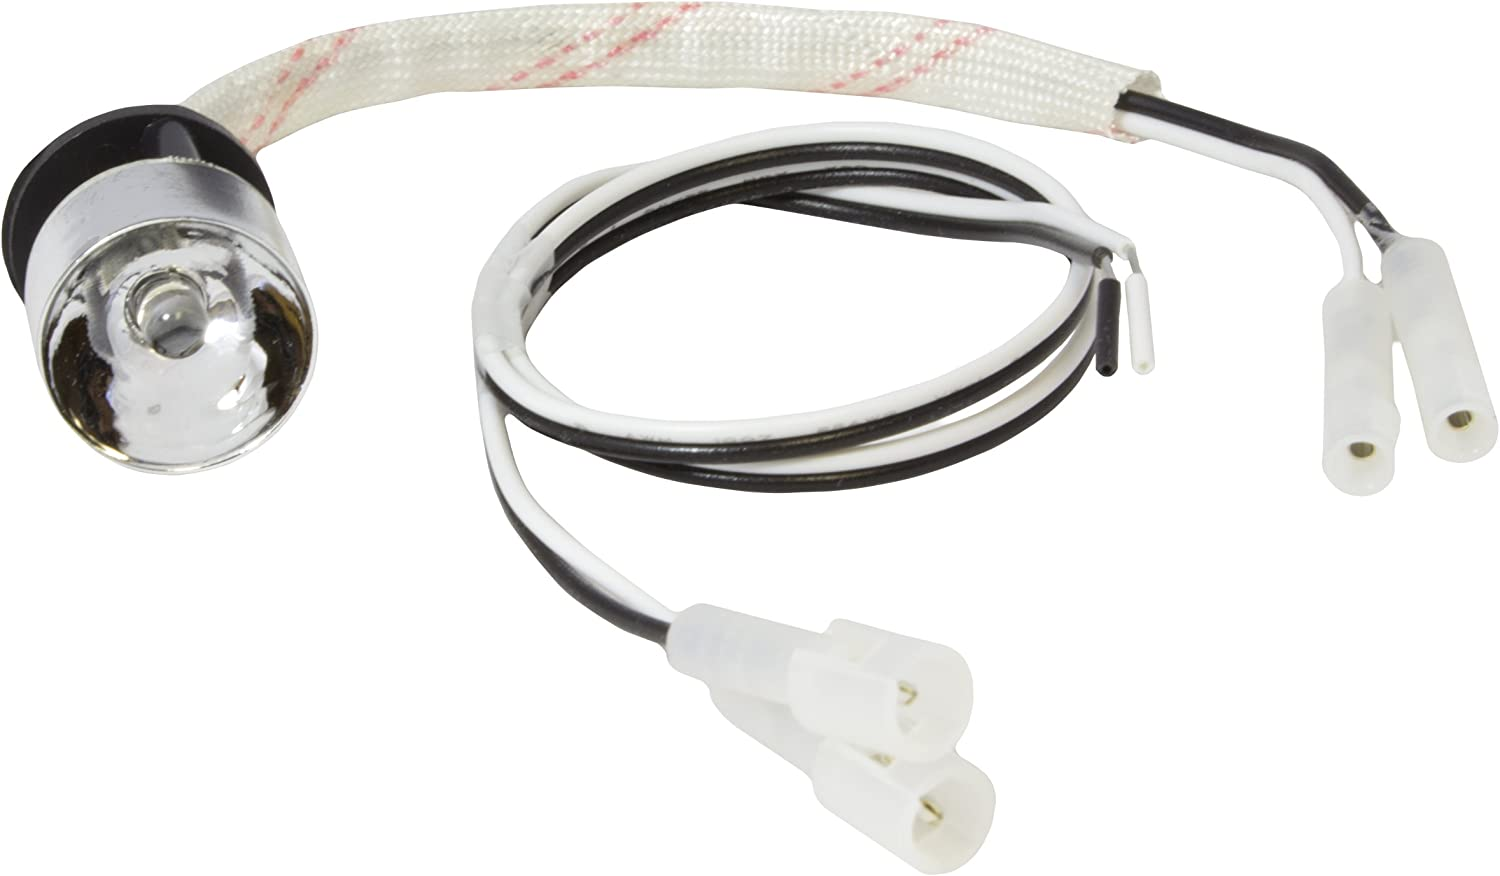 86430-LED ASSEM-DB Cool White Replacement LED Light Assembly for IllumaGrip Handles ITC